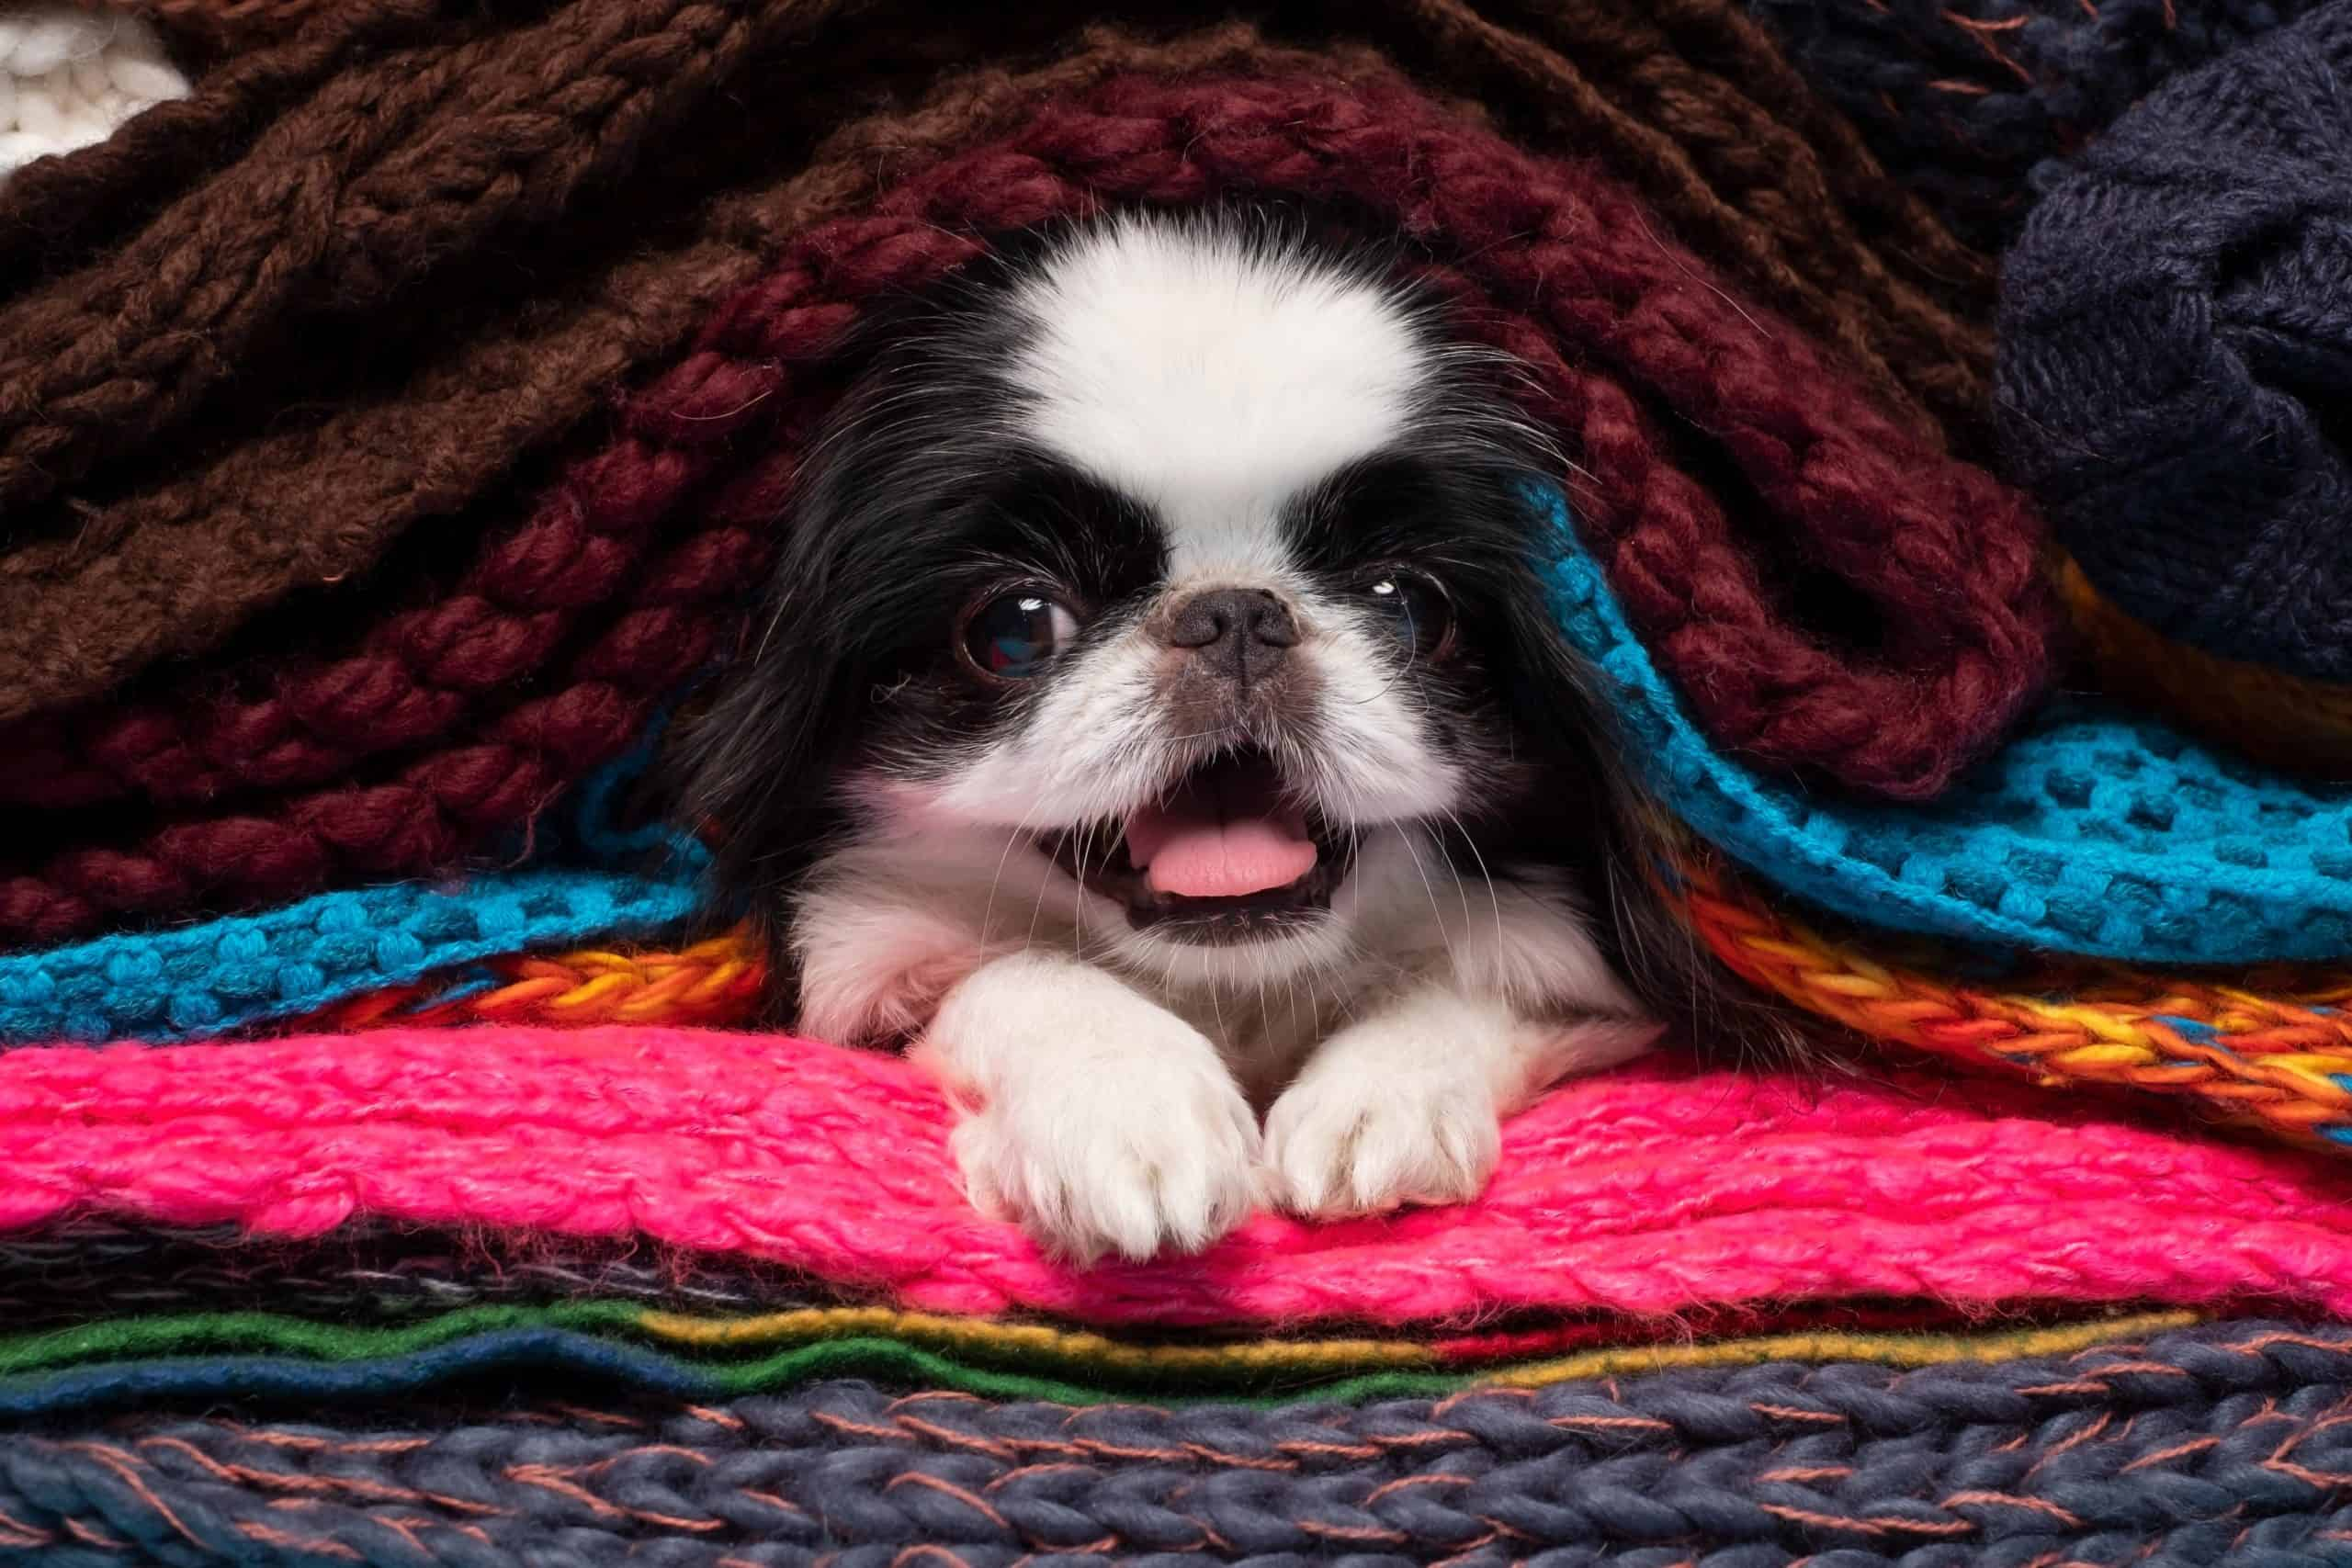 Happy Japanese Chin snuggles under blankets. The Japanese Chin is very empathetic and can instantly tune into its owner's mood and act accordingly.